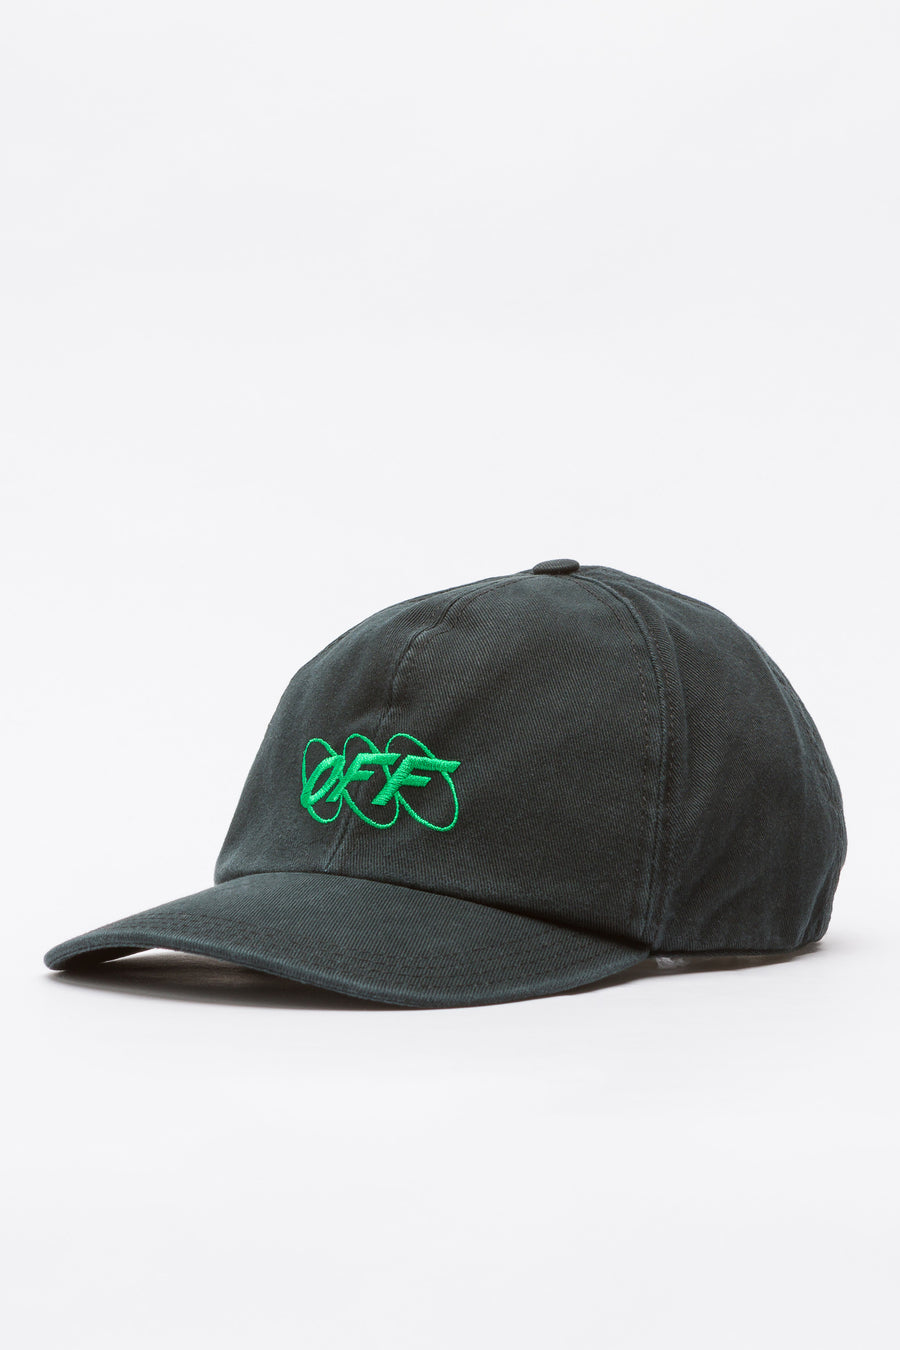 Off-White Circle Off 6 Panel Cap in Black/Green - Notre